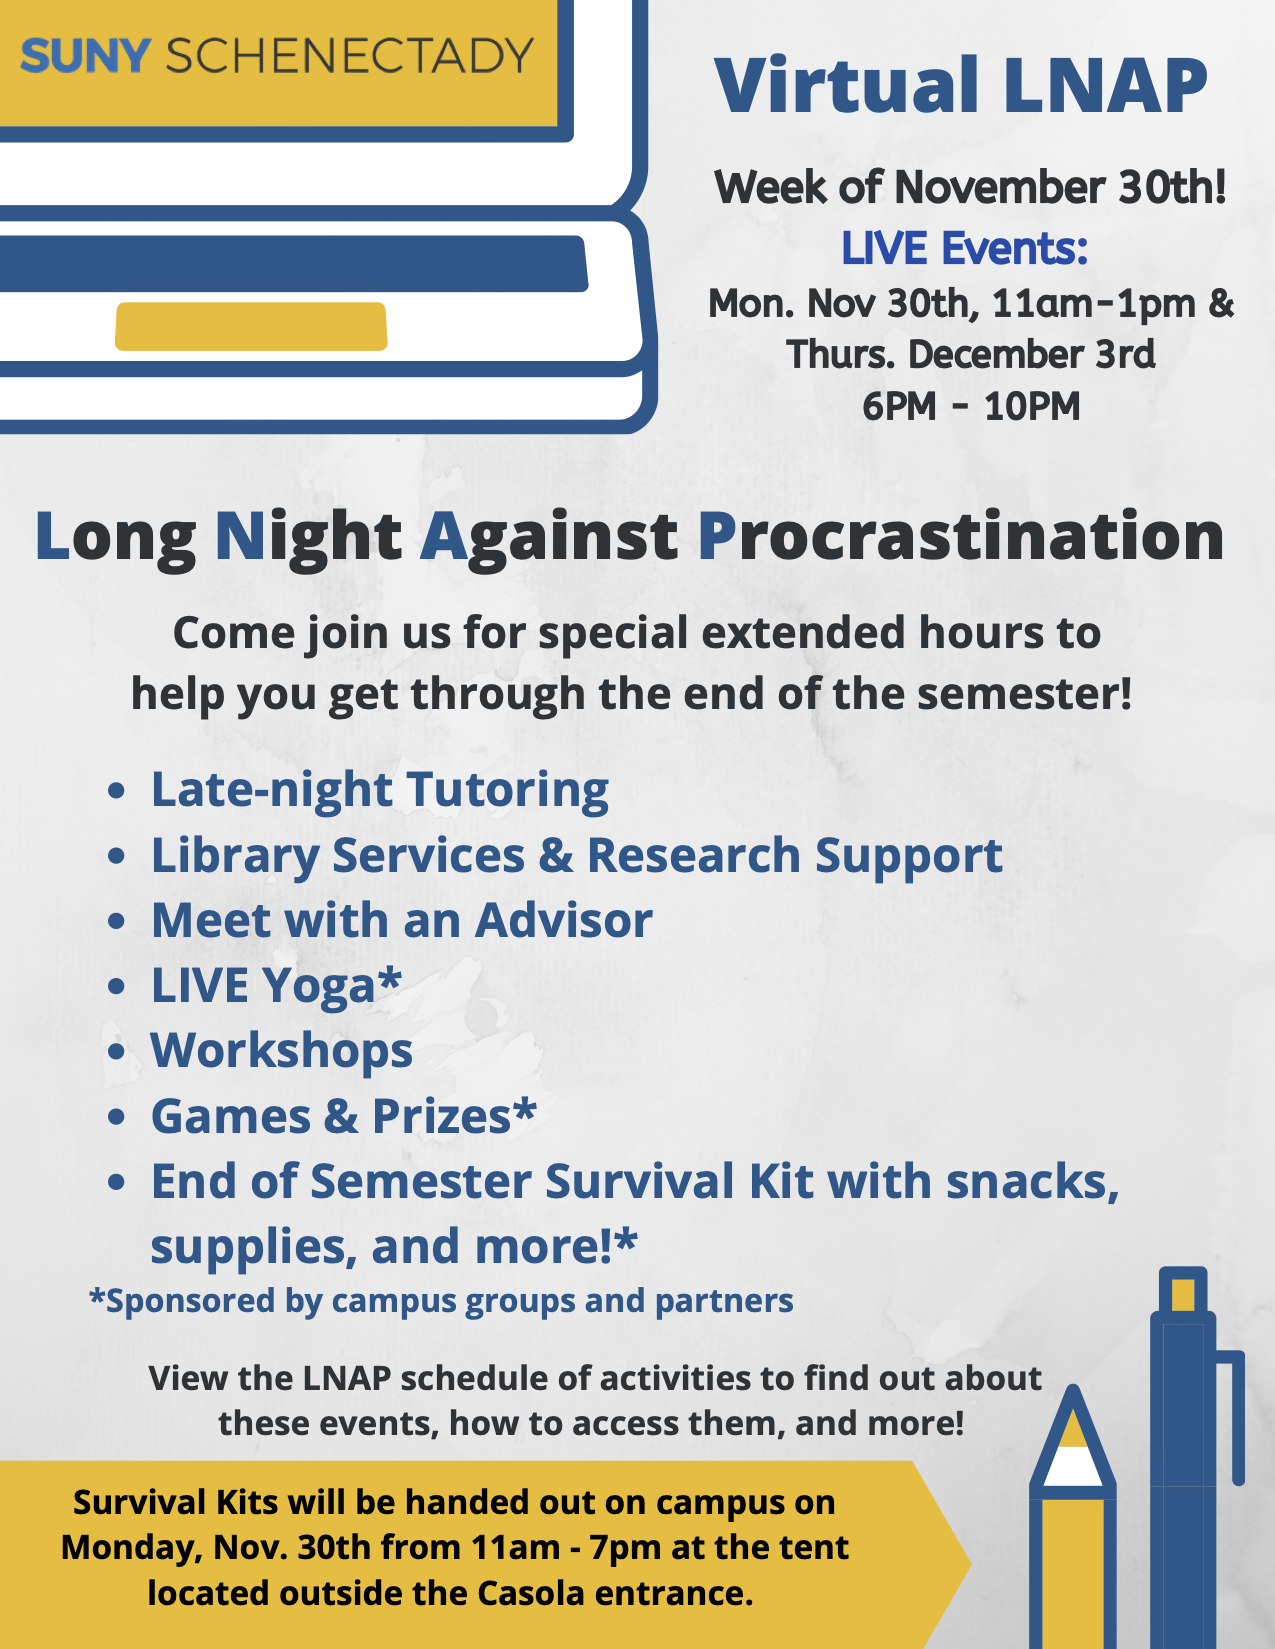 Flyer for virtual long night against procrastination. Week of November 30. Live events Monday November 30 11a.m. - 1p.m. and Thursday December 3 6p.m. - 10p.m.